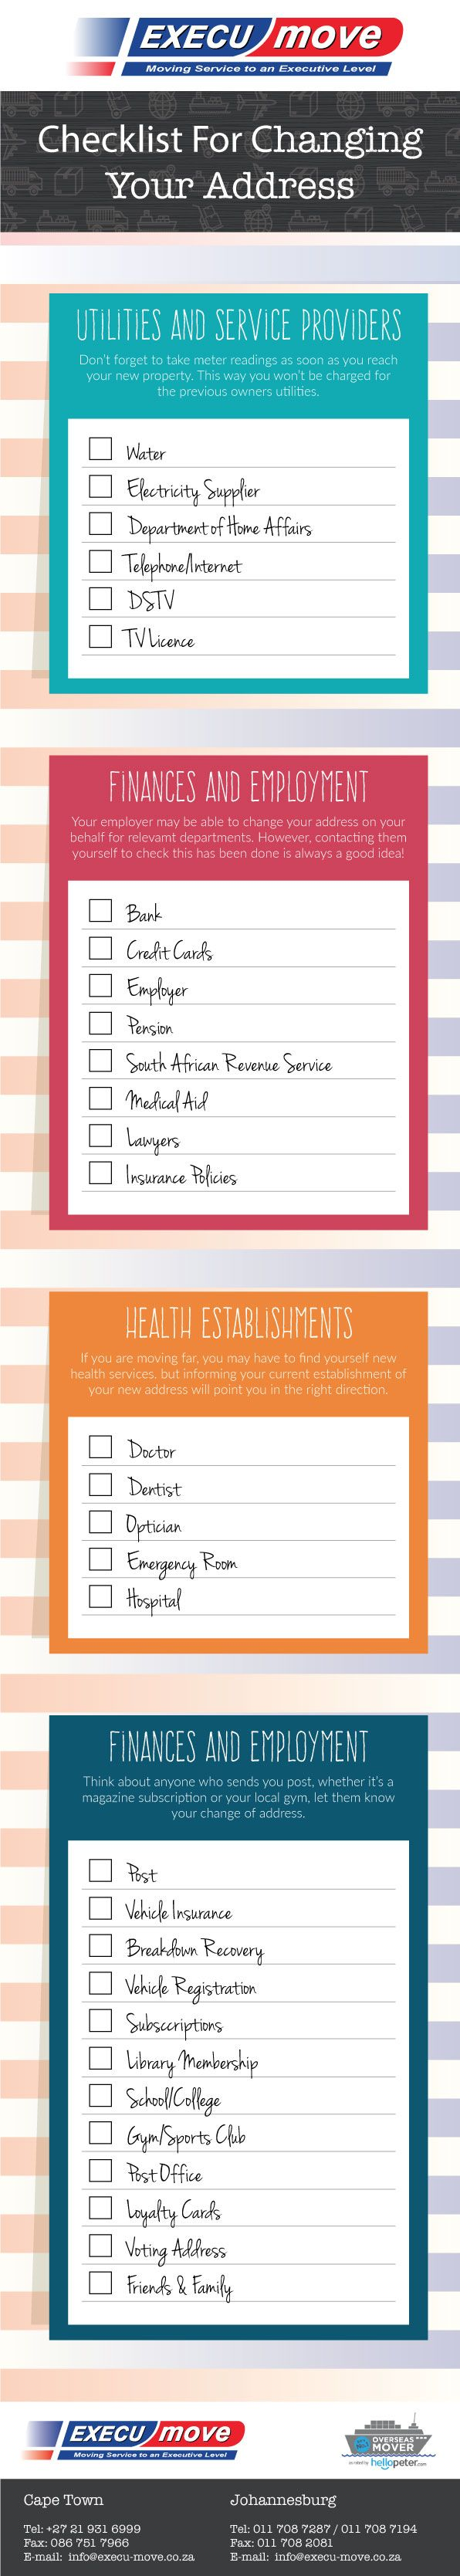 Infographic: Checklist For Changing Your Address - Execu-Move